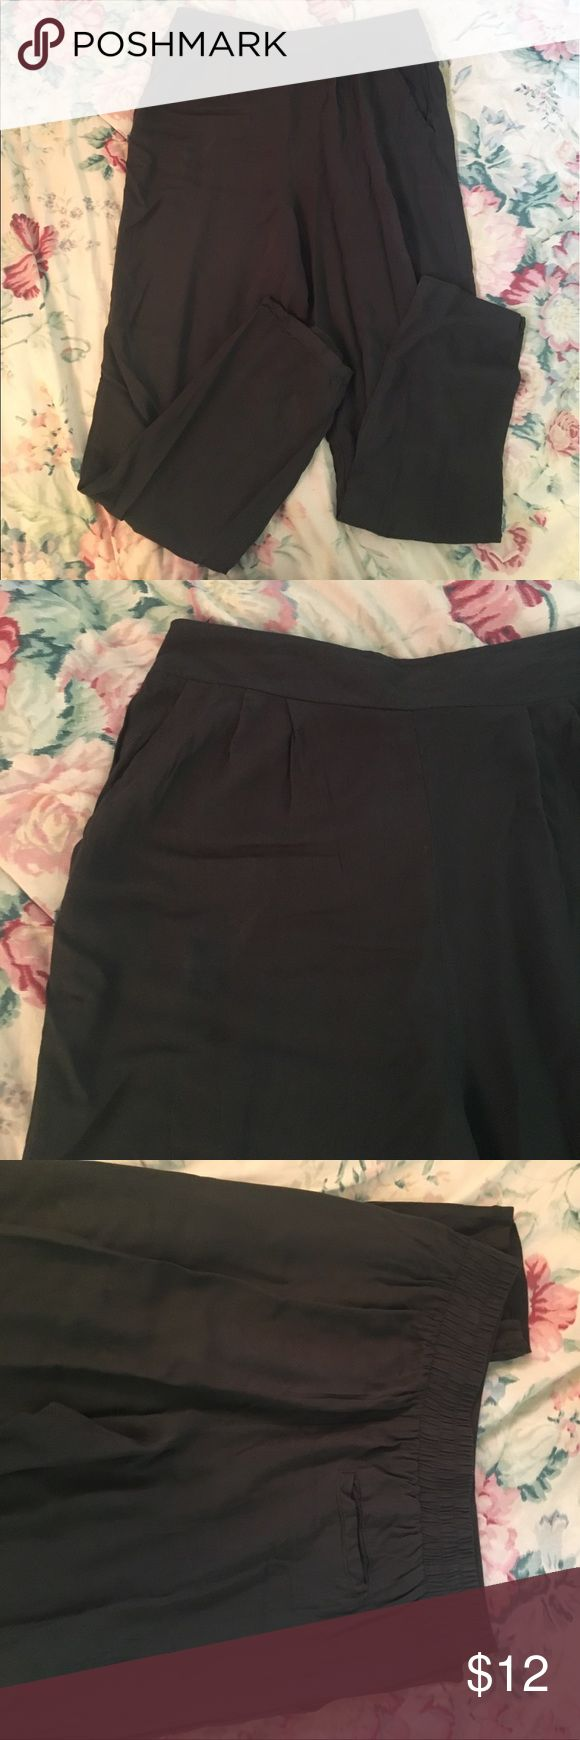 Forever 21 Forest Green Pants Great condition! Has elastic waist. 2 front pockets and one in back. Forever 21 Pants Straight Leg